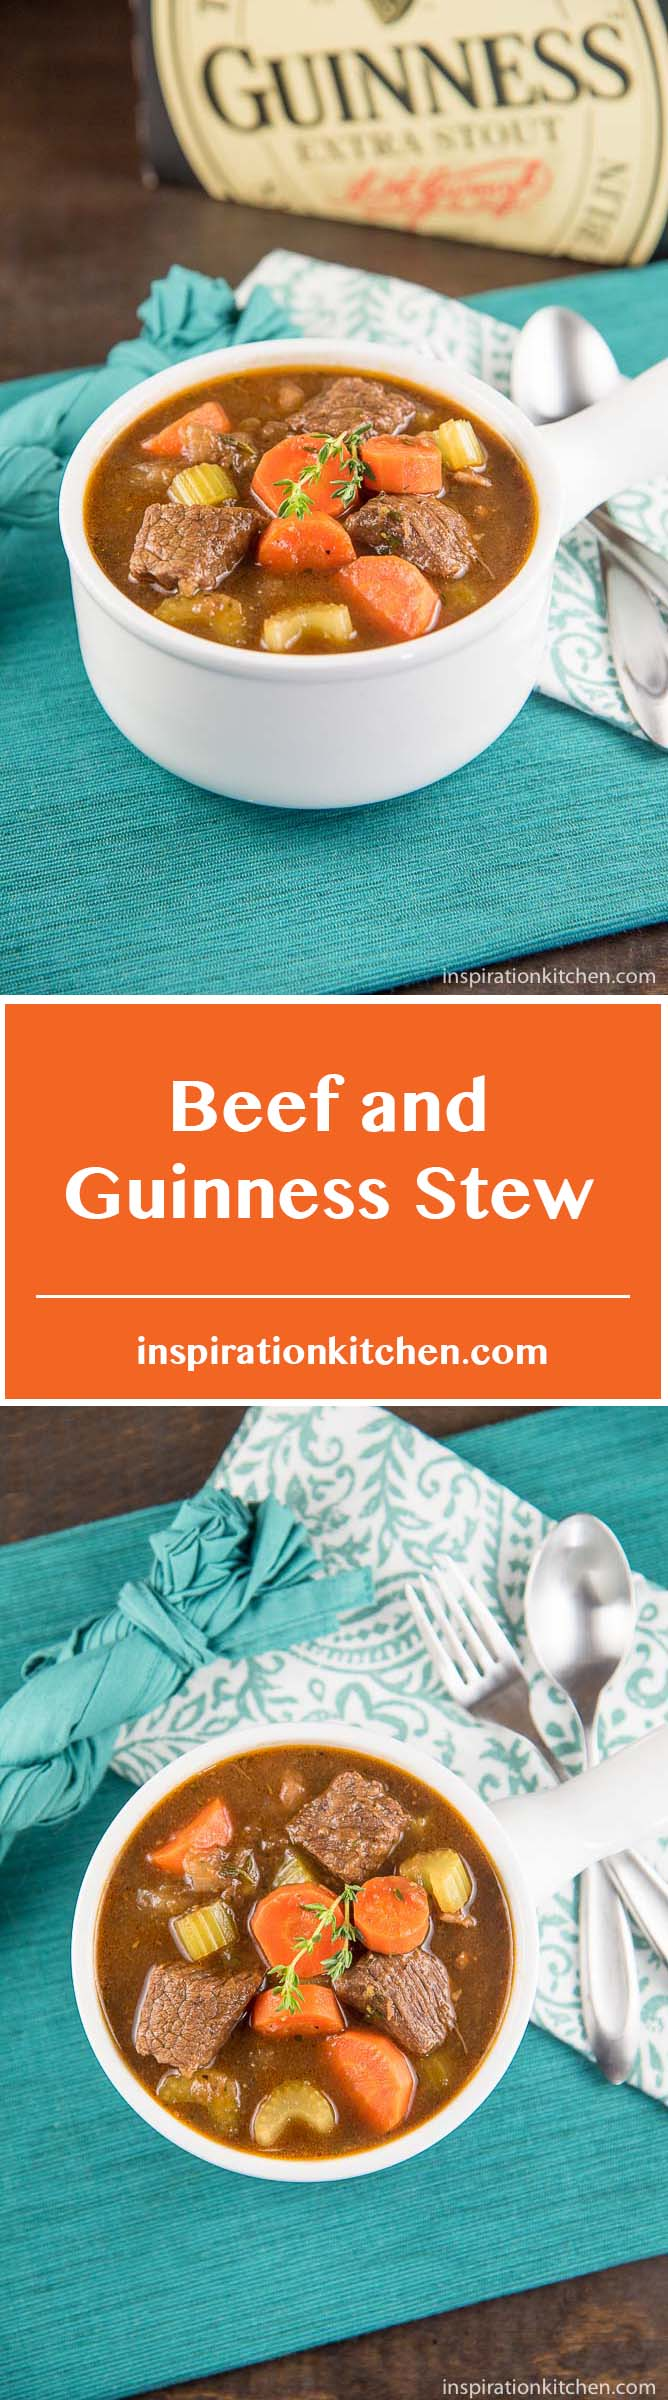 Beef And Guinness Stew - inspirationkitchen.com